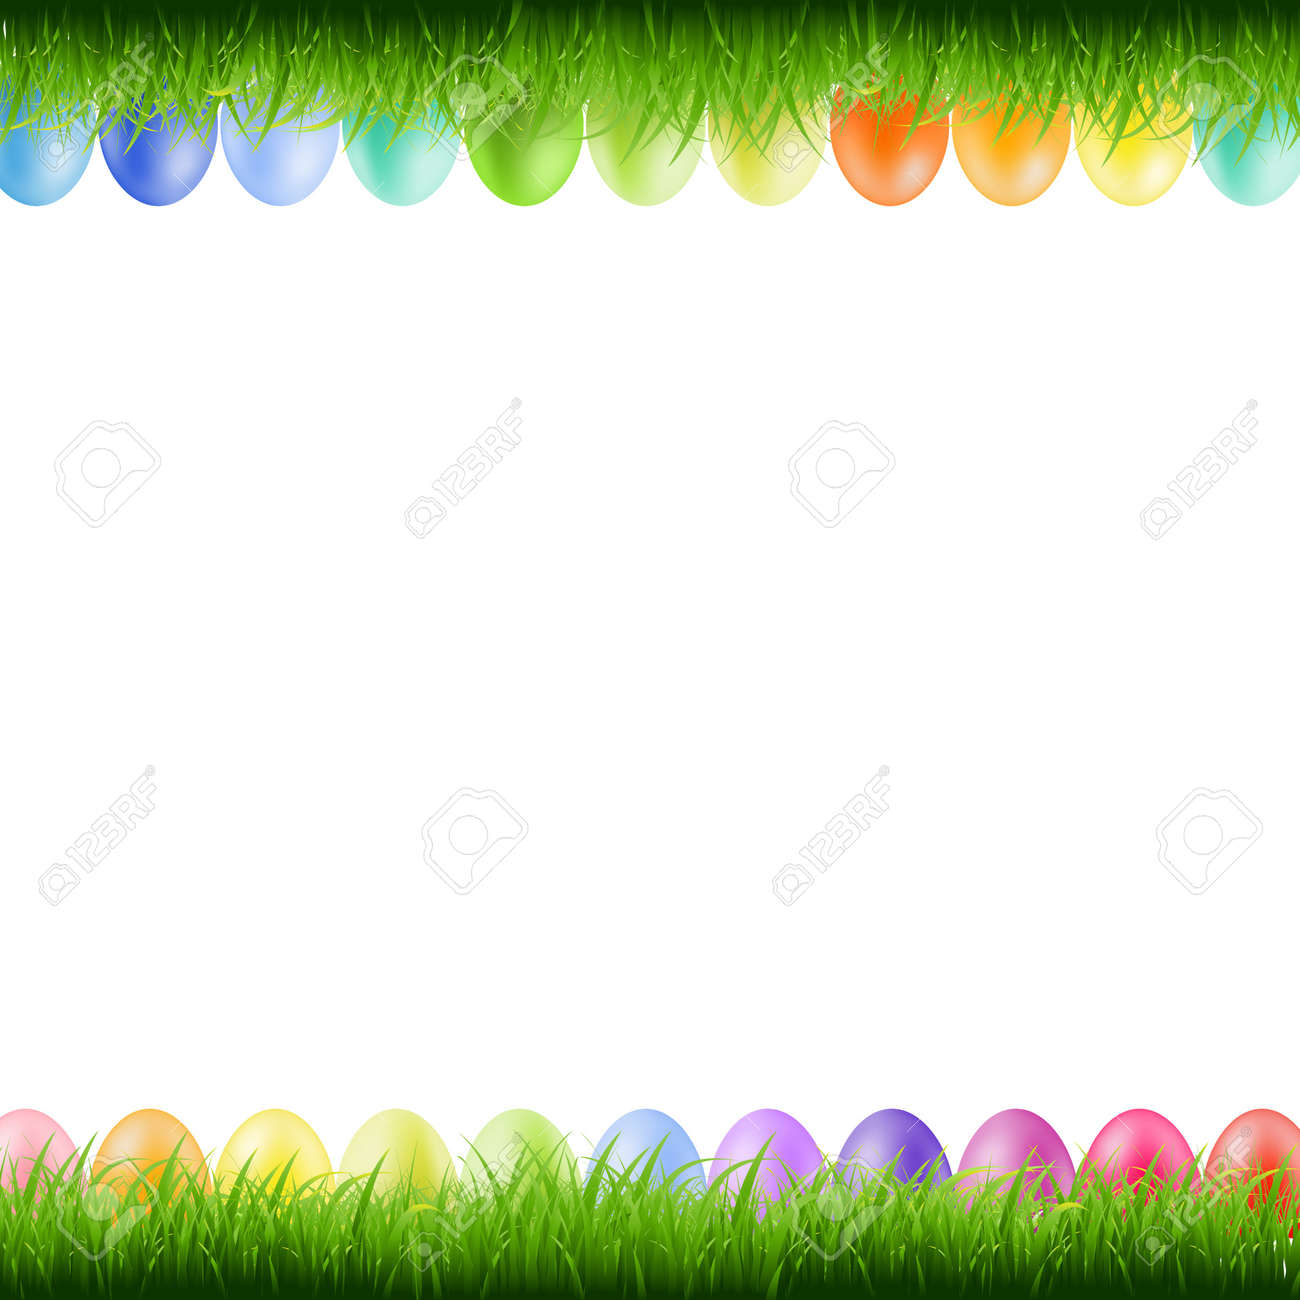 Grass Borders With Easter Eggs With Gradient Mesh, Vector ...